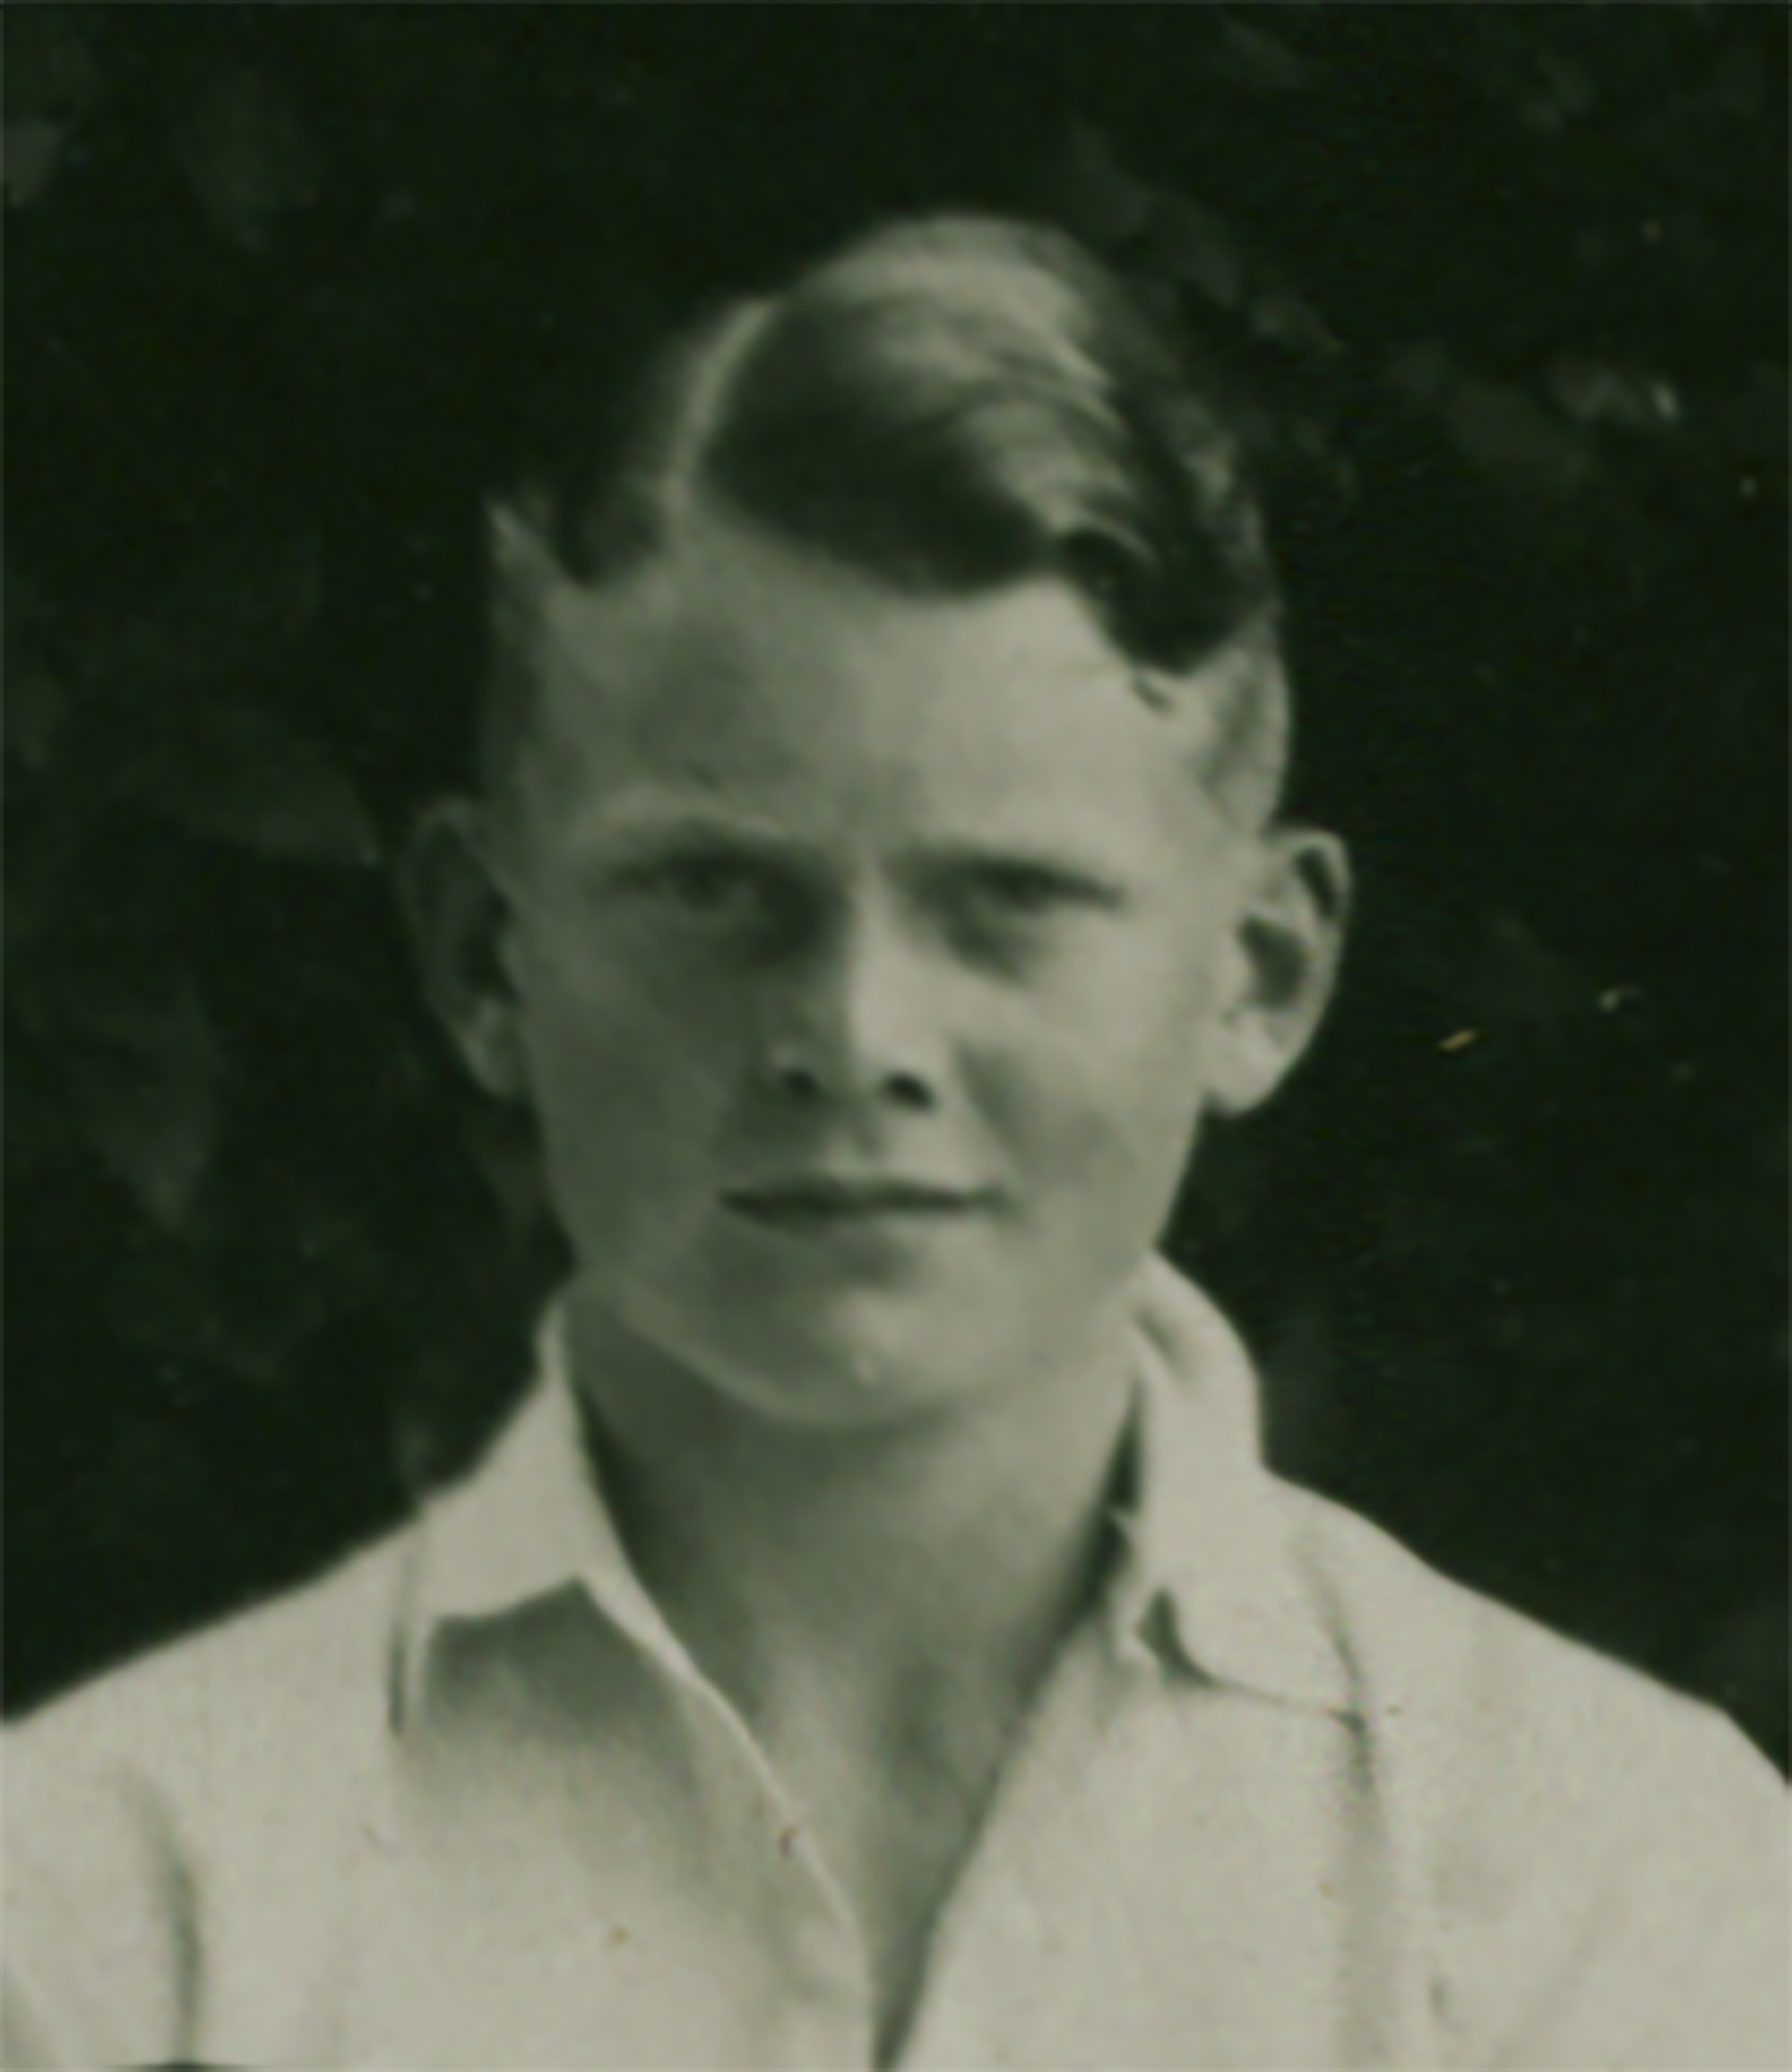 Portrait-Image-159---1945_02_10_holdsworth_frank_dare_cropped_1933_boys_cricket_first_eleven_named-(cropped).jpg